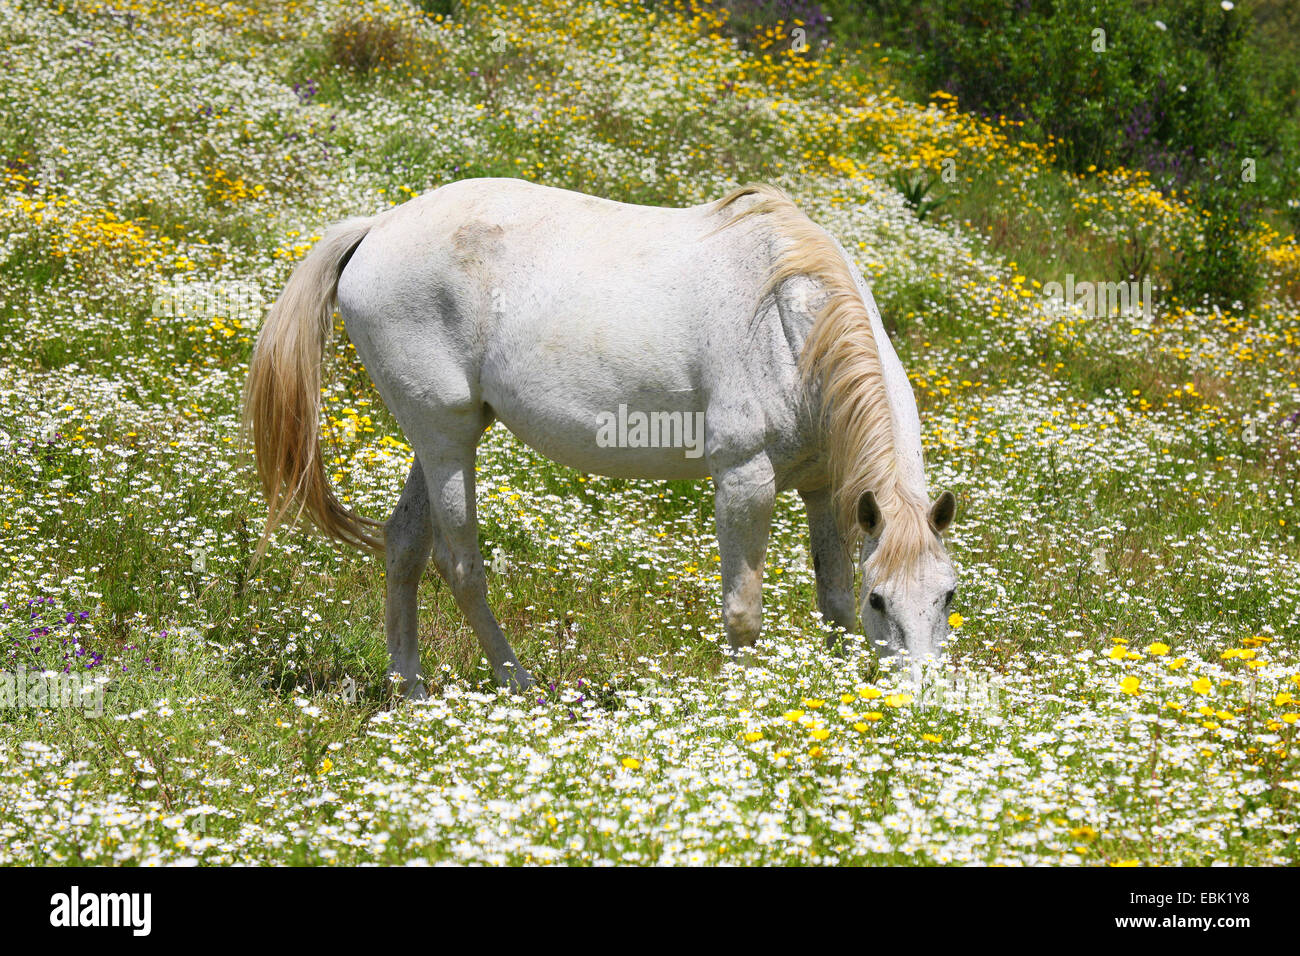 Lusitanian horse (Equus przewalskii f. caballus), white horse browsing in a flower meadow, Portugal - Stock Image